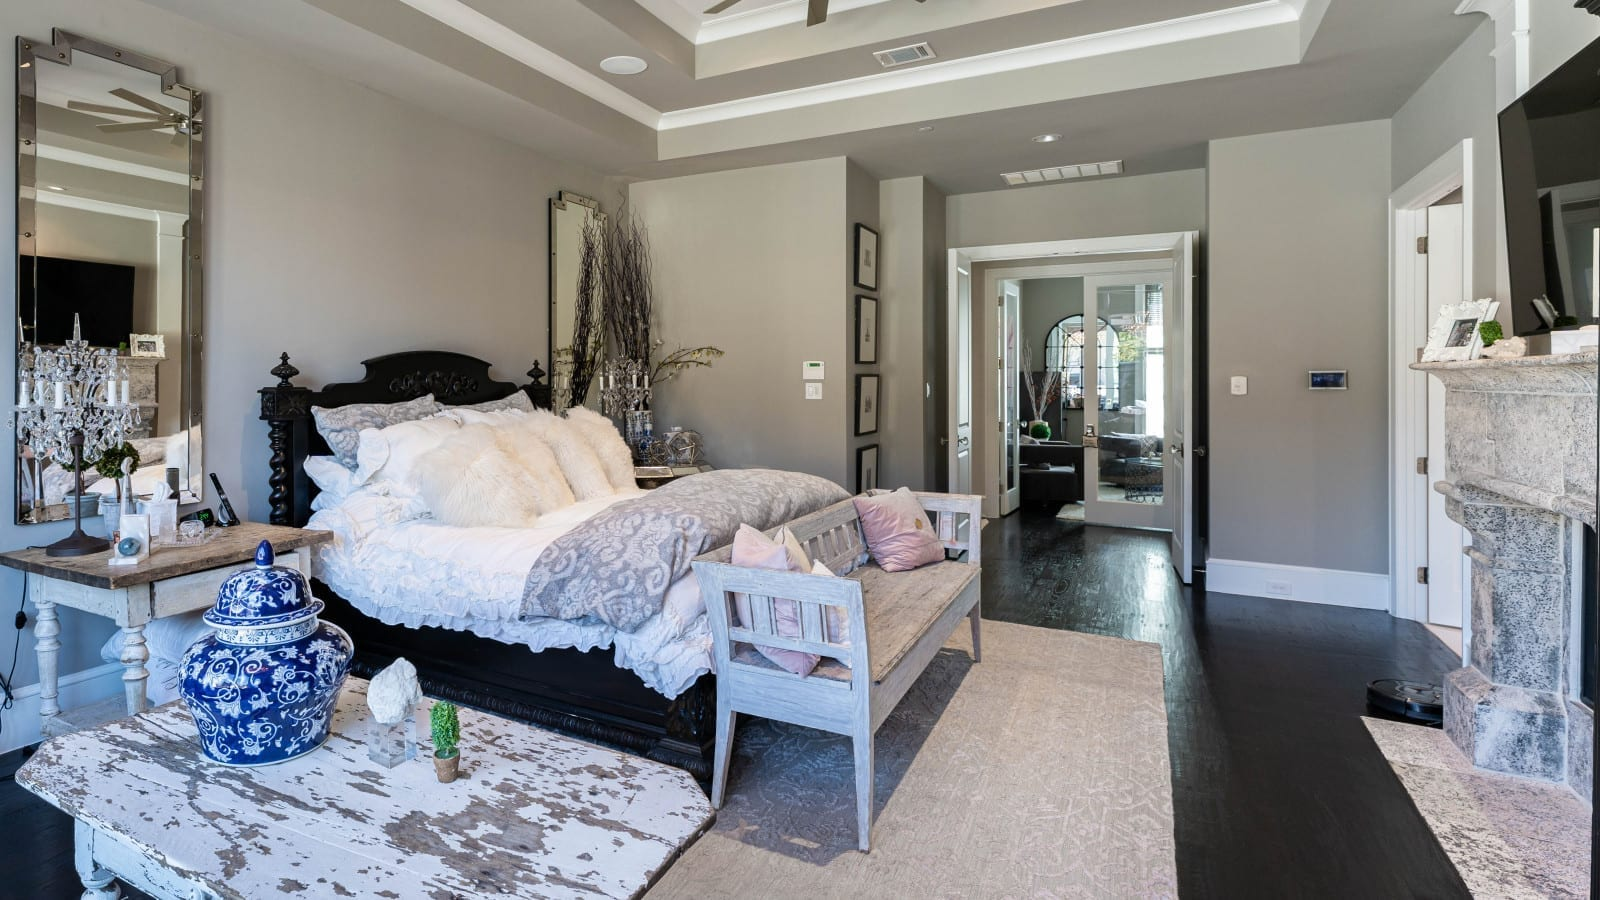 transitional modern style home designed by home builders in Dallas Texas 19 - Millennial Design + Build